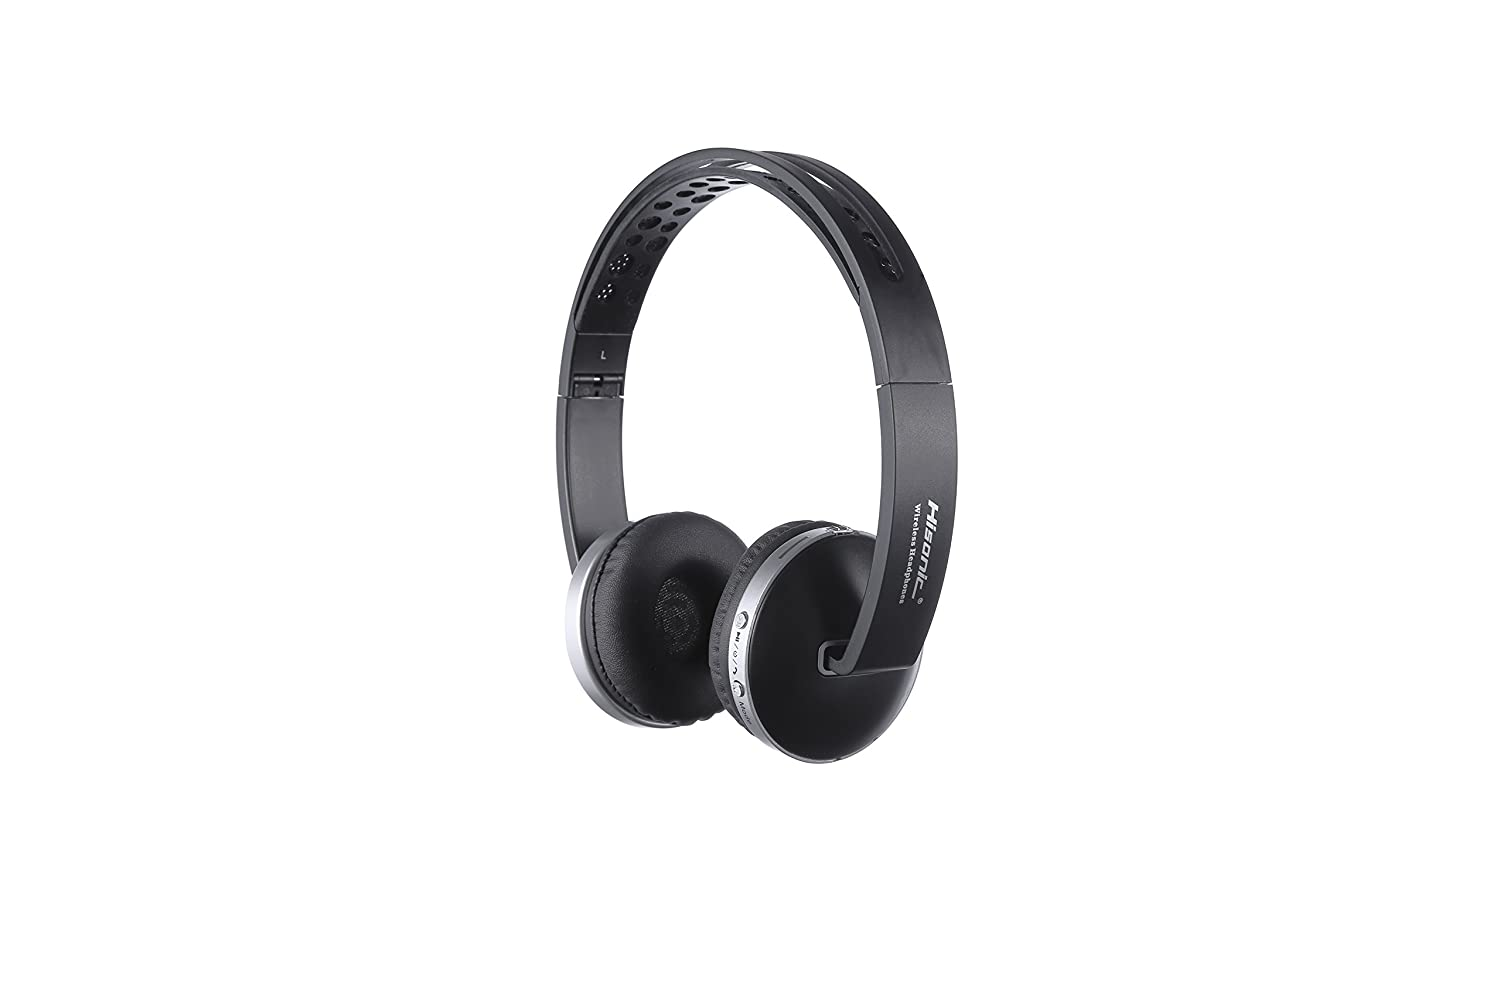 Auriculares Bluetooth Inalámbrico, Hisonic Casco Bluetooth con Tarjeta TF , Micrófono incorporado , Auriculares Bluetooth de Diadema Plegable para TV, PC, ...